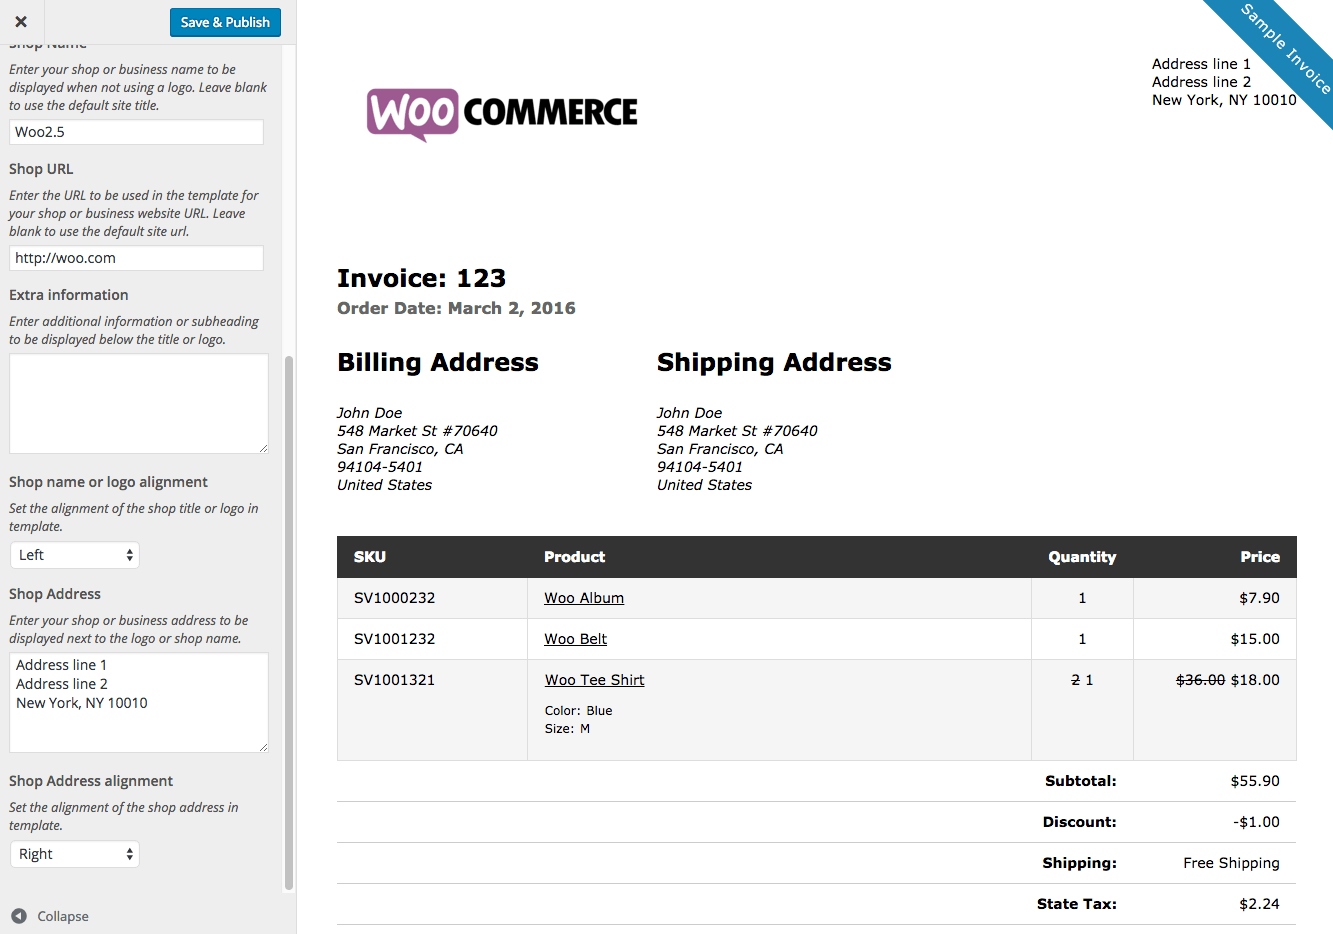 Darkfaderus  Sweet Woocommerce Print Invoices Amp Packing Lists  Woocommerce Docs With Great Woocommerce Print Invoices  Packing Lists Customizer With Astounding Taxi Invoice Format Also What Is Invoice Id In Addition Net Invoice Definition And Send An Invoice With Square As Well As What Is The Net Amount On An Invoice Additionally New Car Invoice Prices By Vin From Docswoocommercecom With Darkfaderus  Great Woocommerce Print Invoices Amp Packing Lists  Woocommerce Docs With Astounding Woocommerce Print Invoices  Packing Lists Customizer And Sweet Taxi Invoice Format Also What Is Invoice Id In Addition Net Invoice Definition From Docswoocommercecom